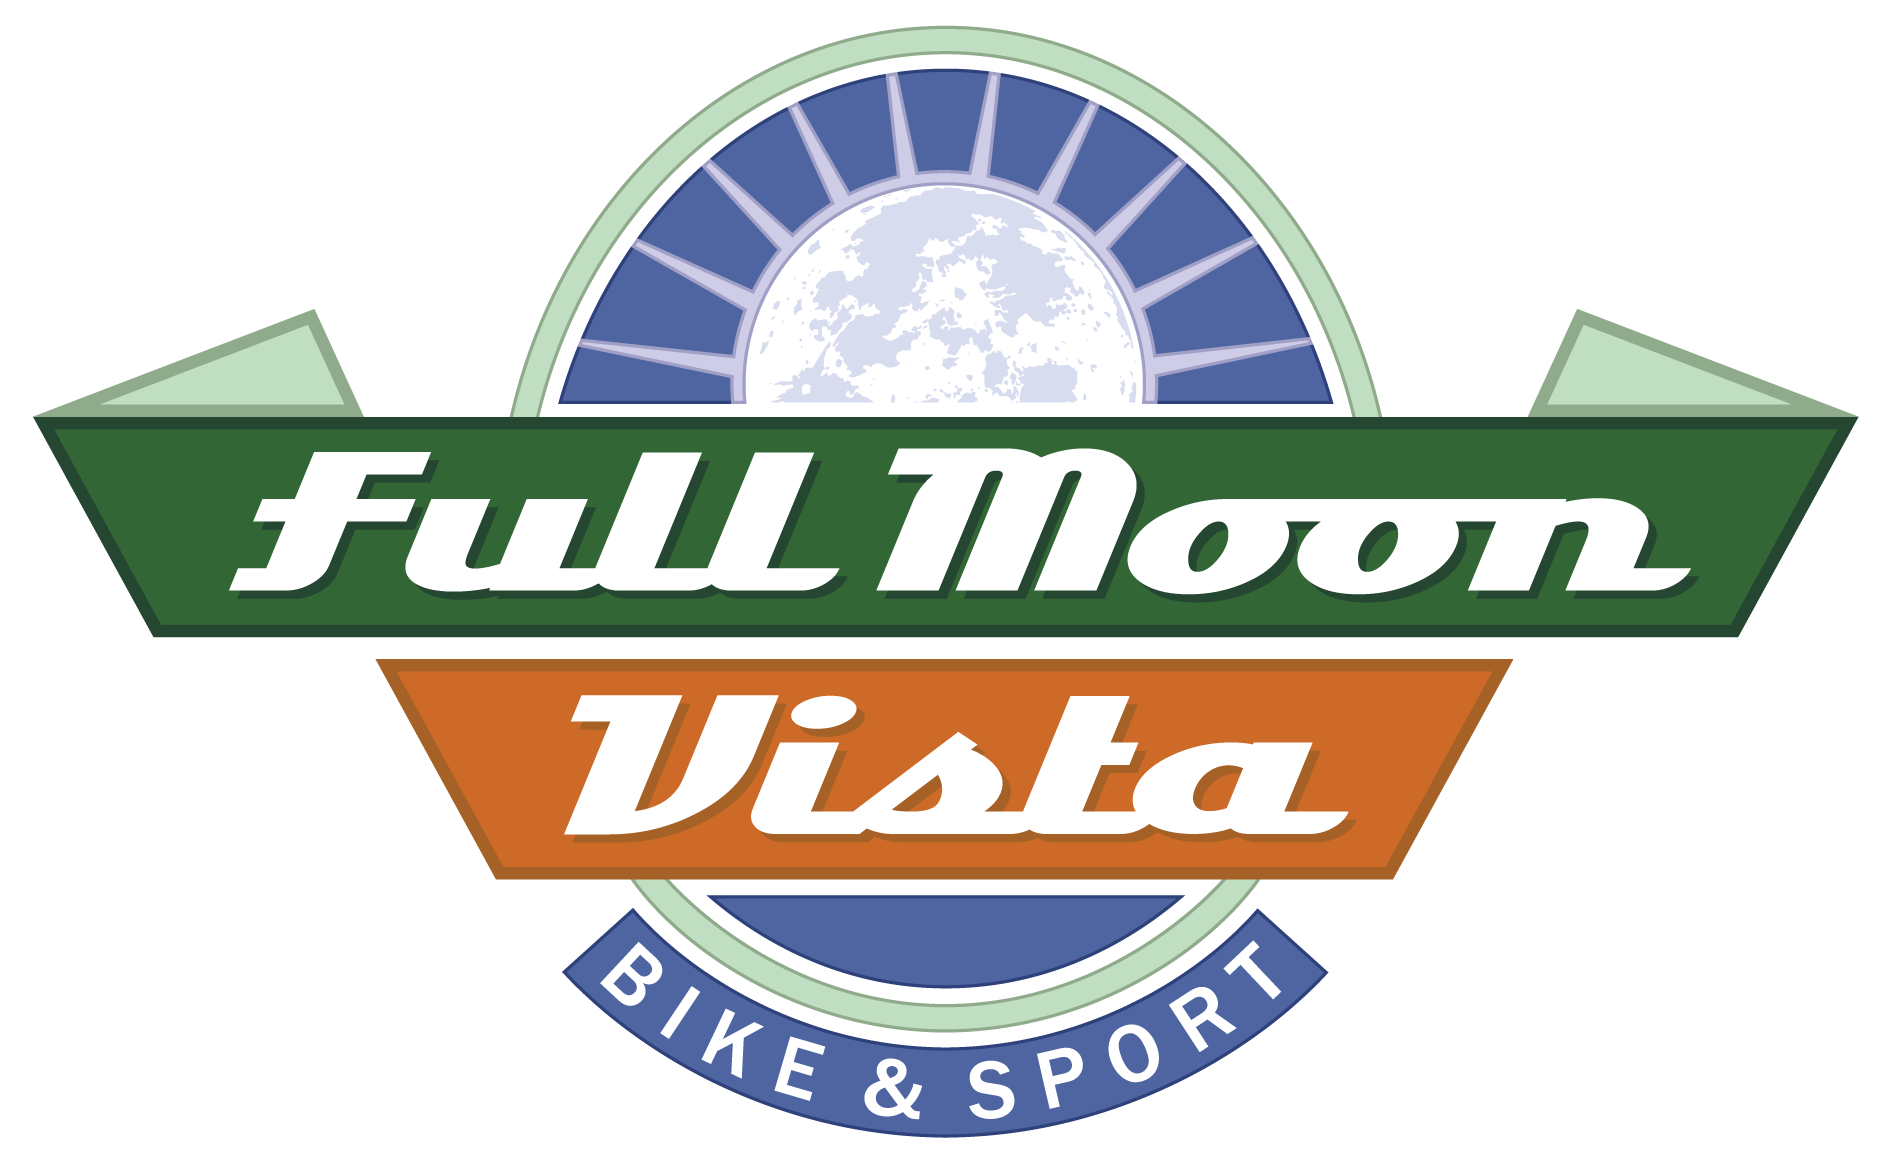 Full Moon Vista Bike & Sport